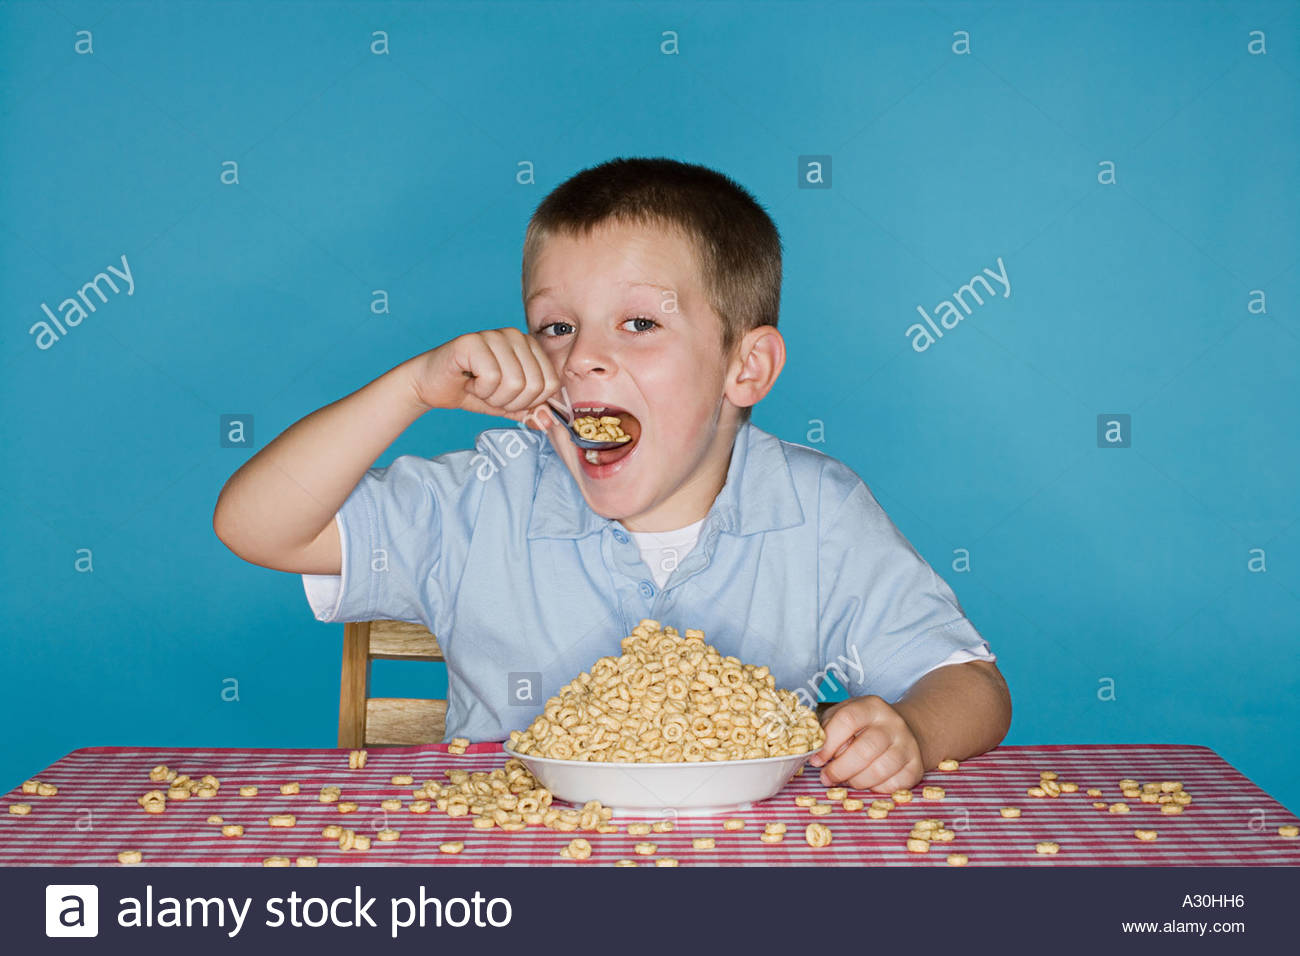 Boy with lots of breakfast cereal - Stock Image